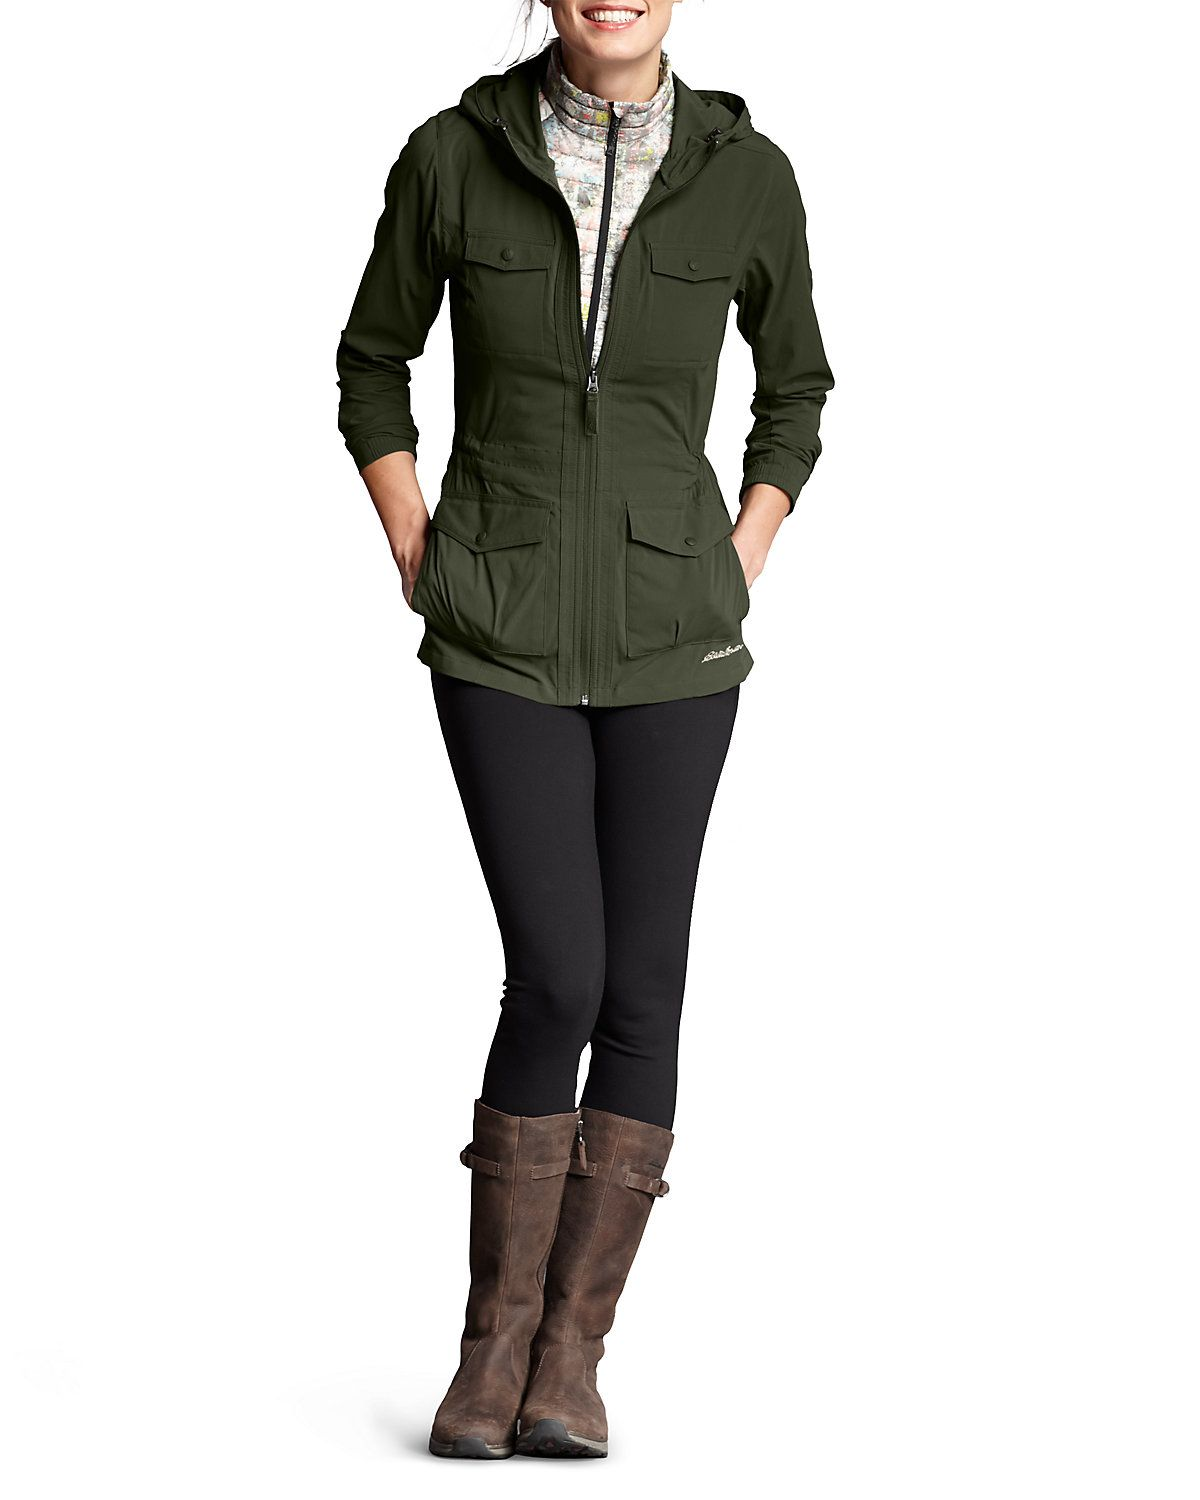 Women's Atlas 2.0 Jacket | Rain jacket women, Jackets for